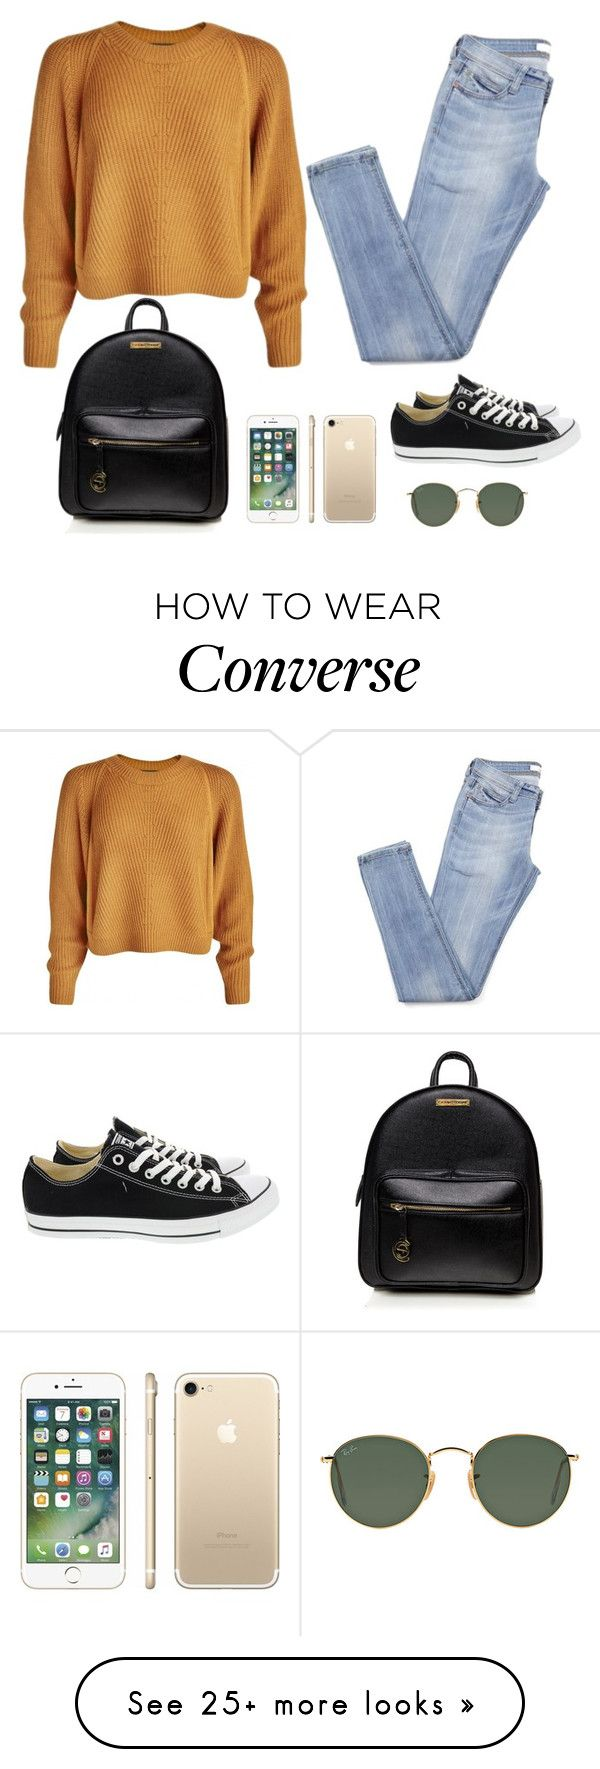 #77 by luluuuuuuuuuu on Polyvore featuring Converse and Ray-Ban